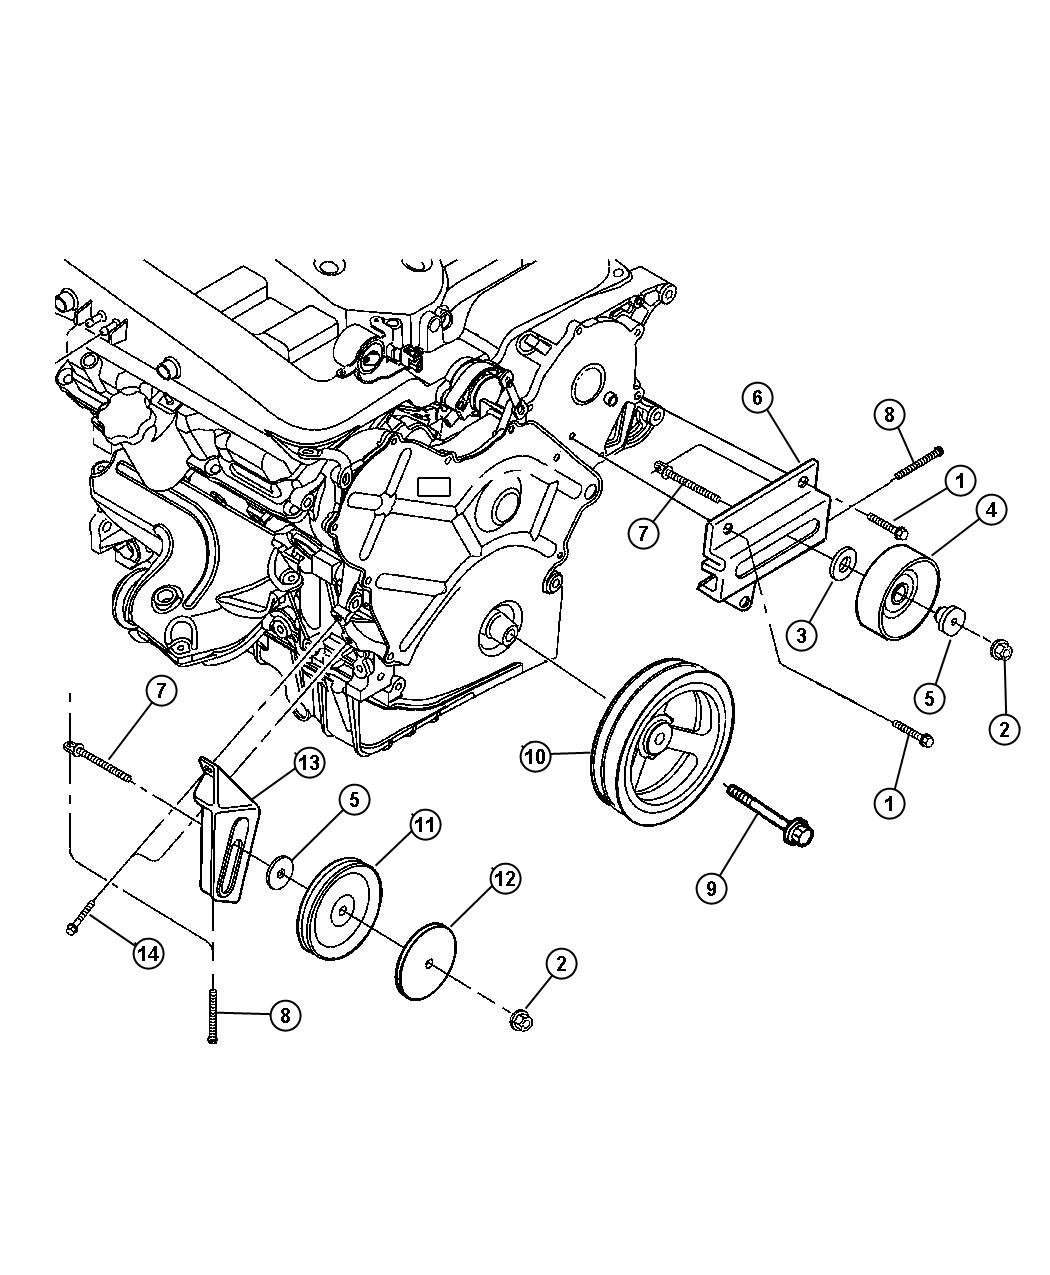 Dodge Intrepid 2 7 Engine Diagram Dodge Auto Wiring